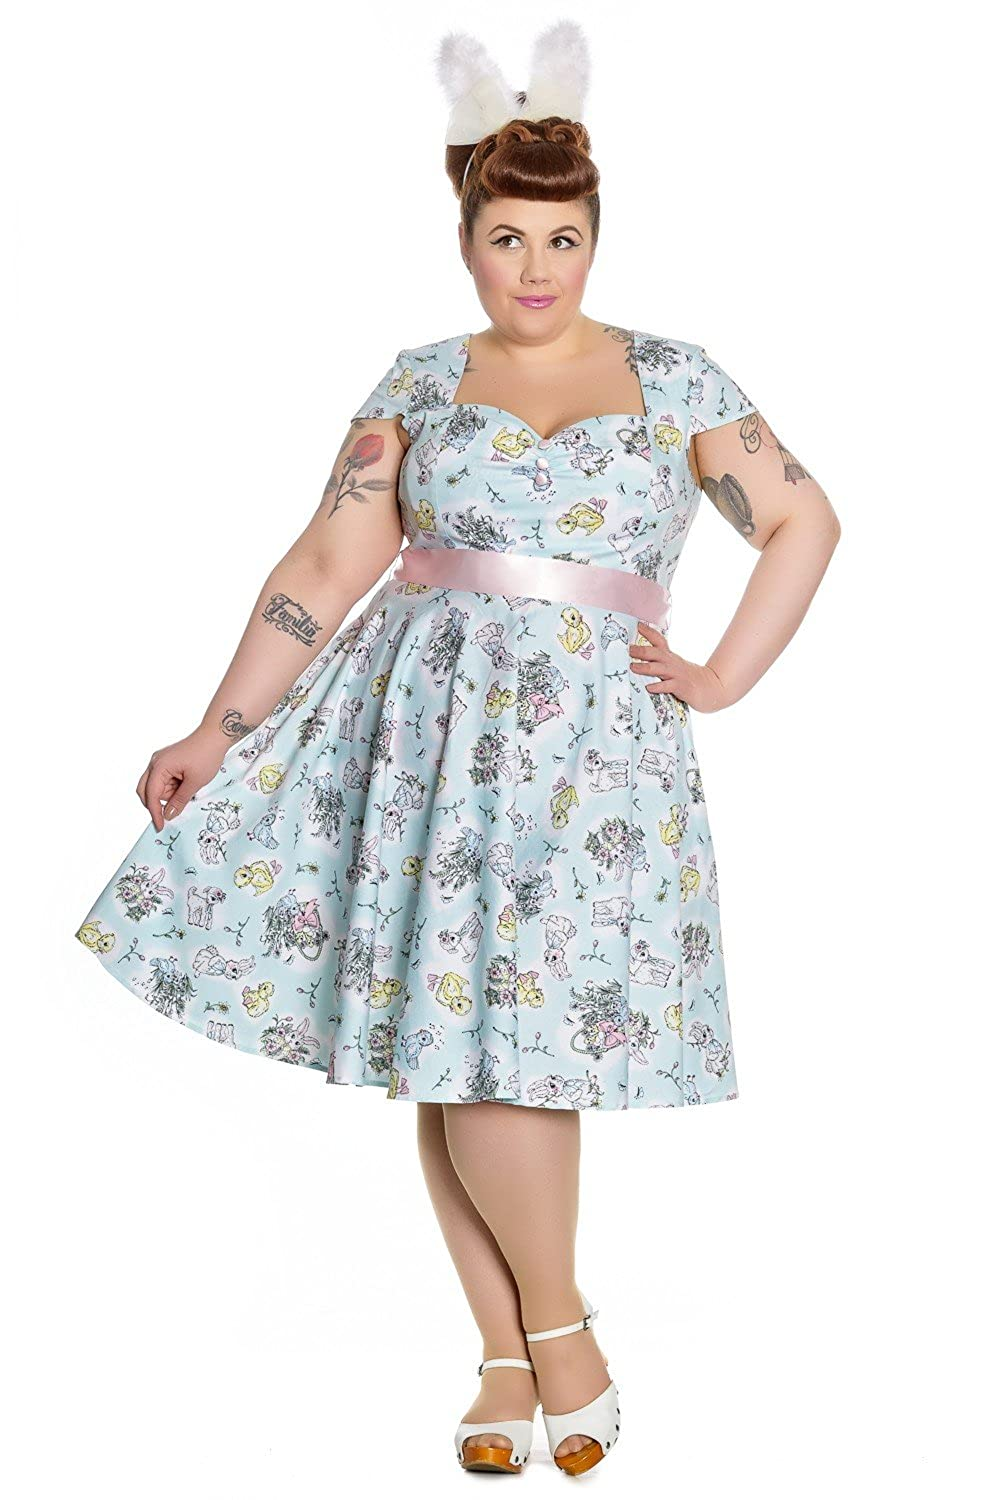 1960s Plus Size Dresses & Retro Mod Fashion Hell Bunny 60s Vintage Hallmark Easter Bunny Mint Blue Party Dress $79.95 AT vintagedancer.com